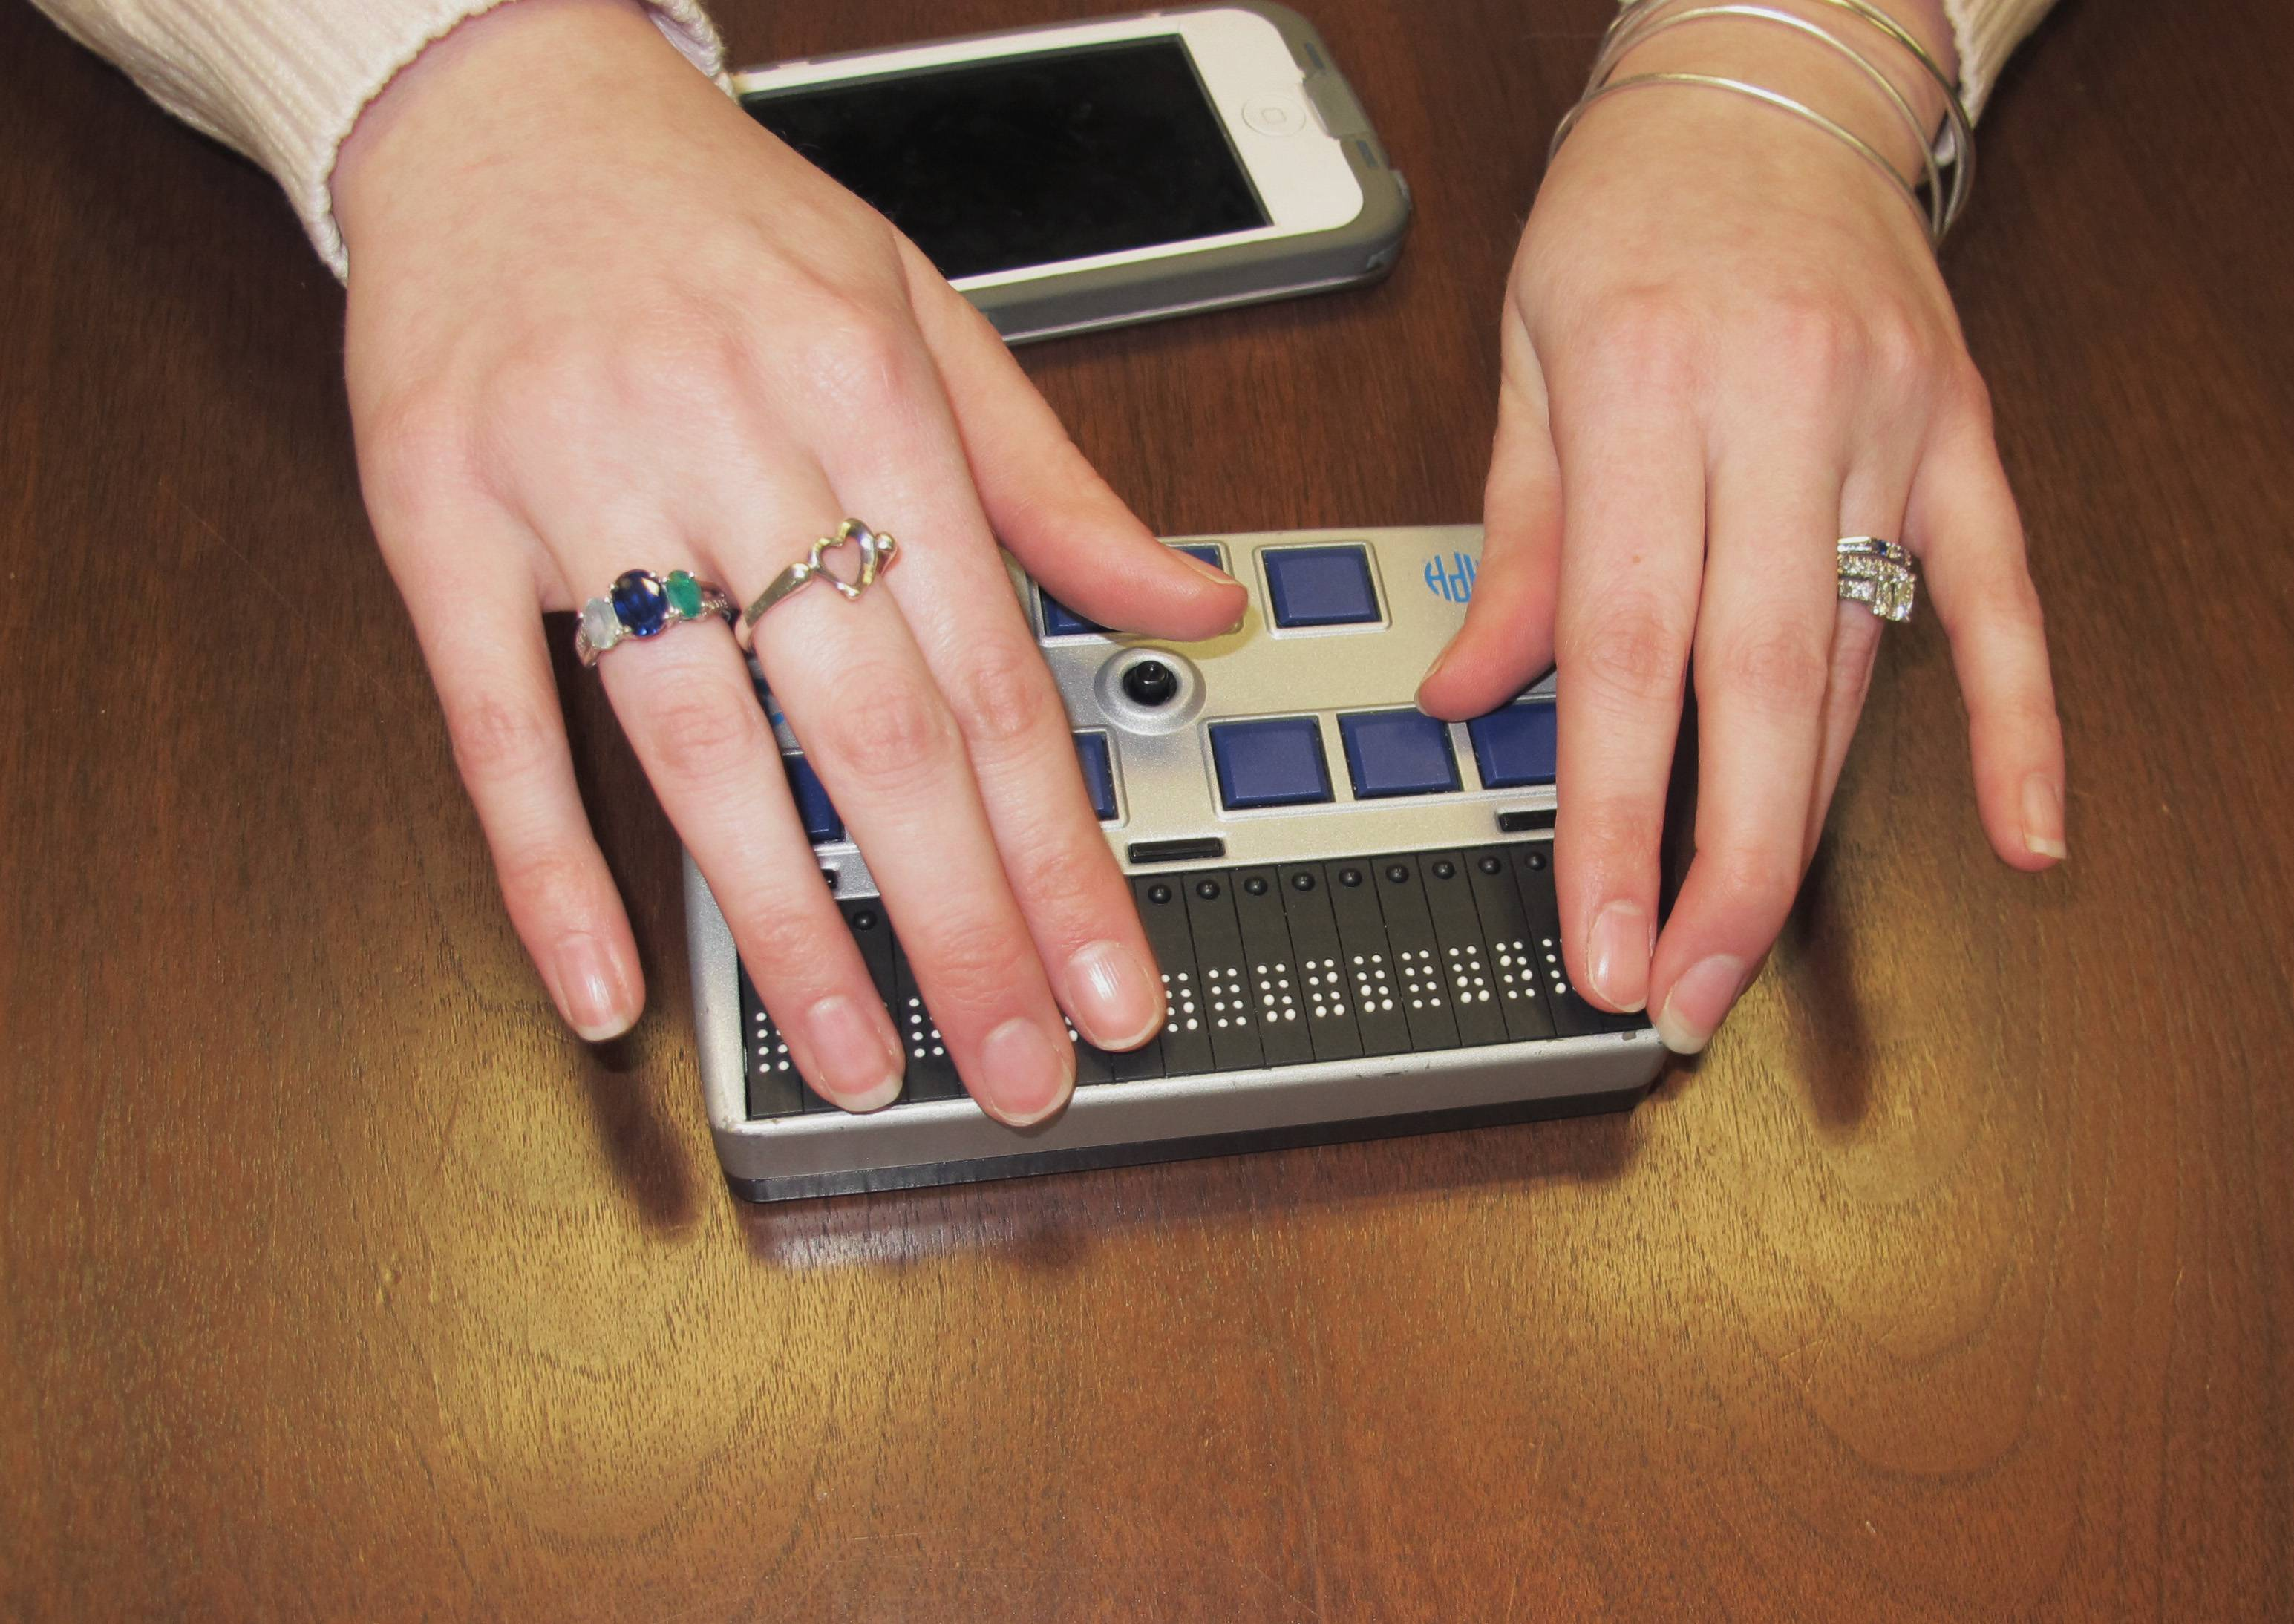 Megan Dausch, an instructor at the Helen Keller National Center, demonstrates the use of a Braille reader that helps blind clients access the Internet, in Sands Point, N.Y.